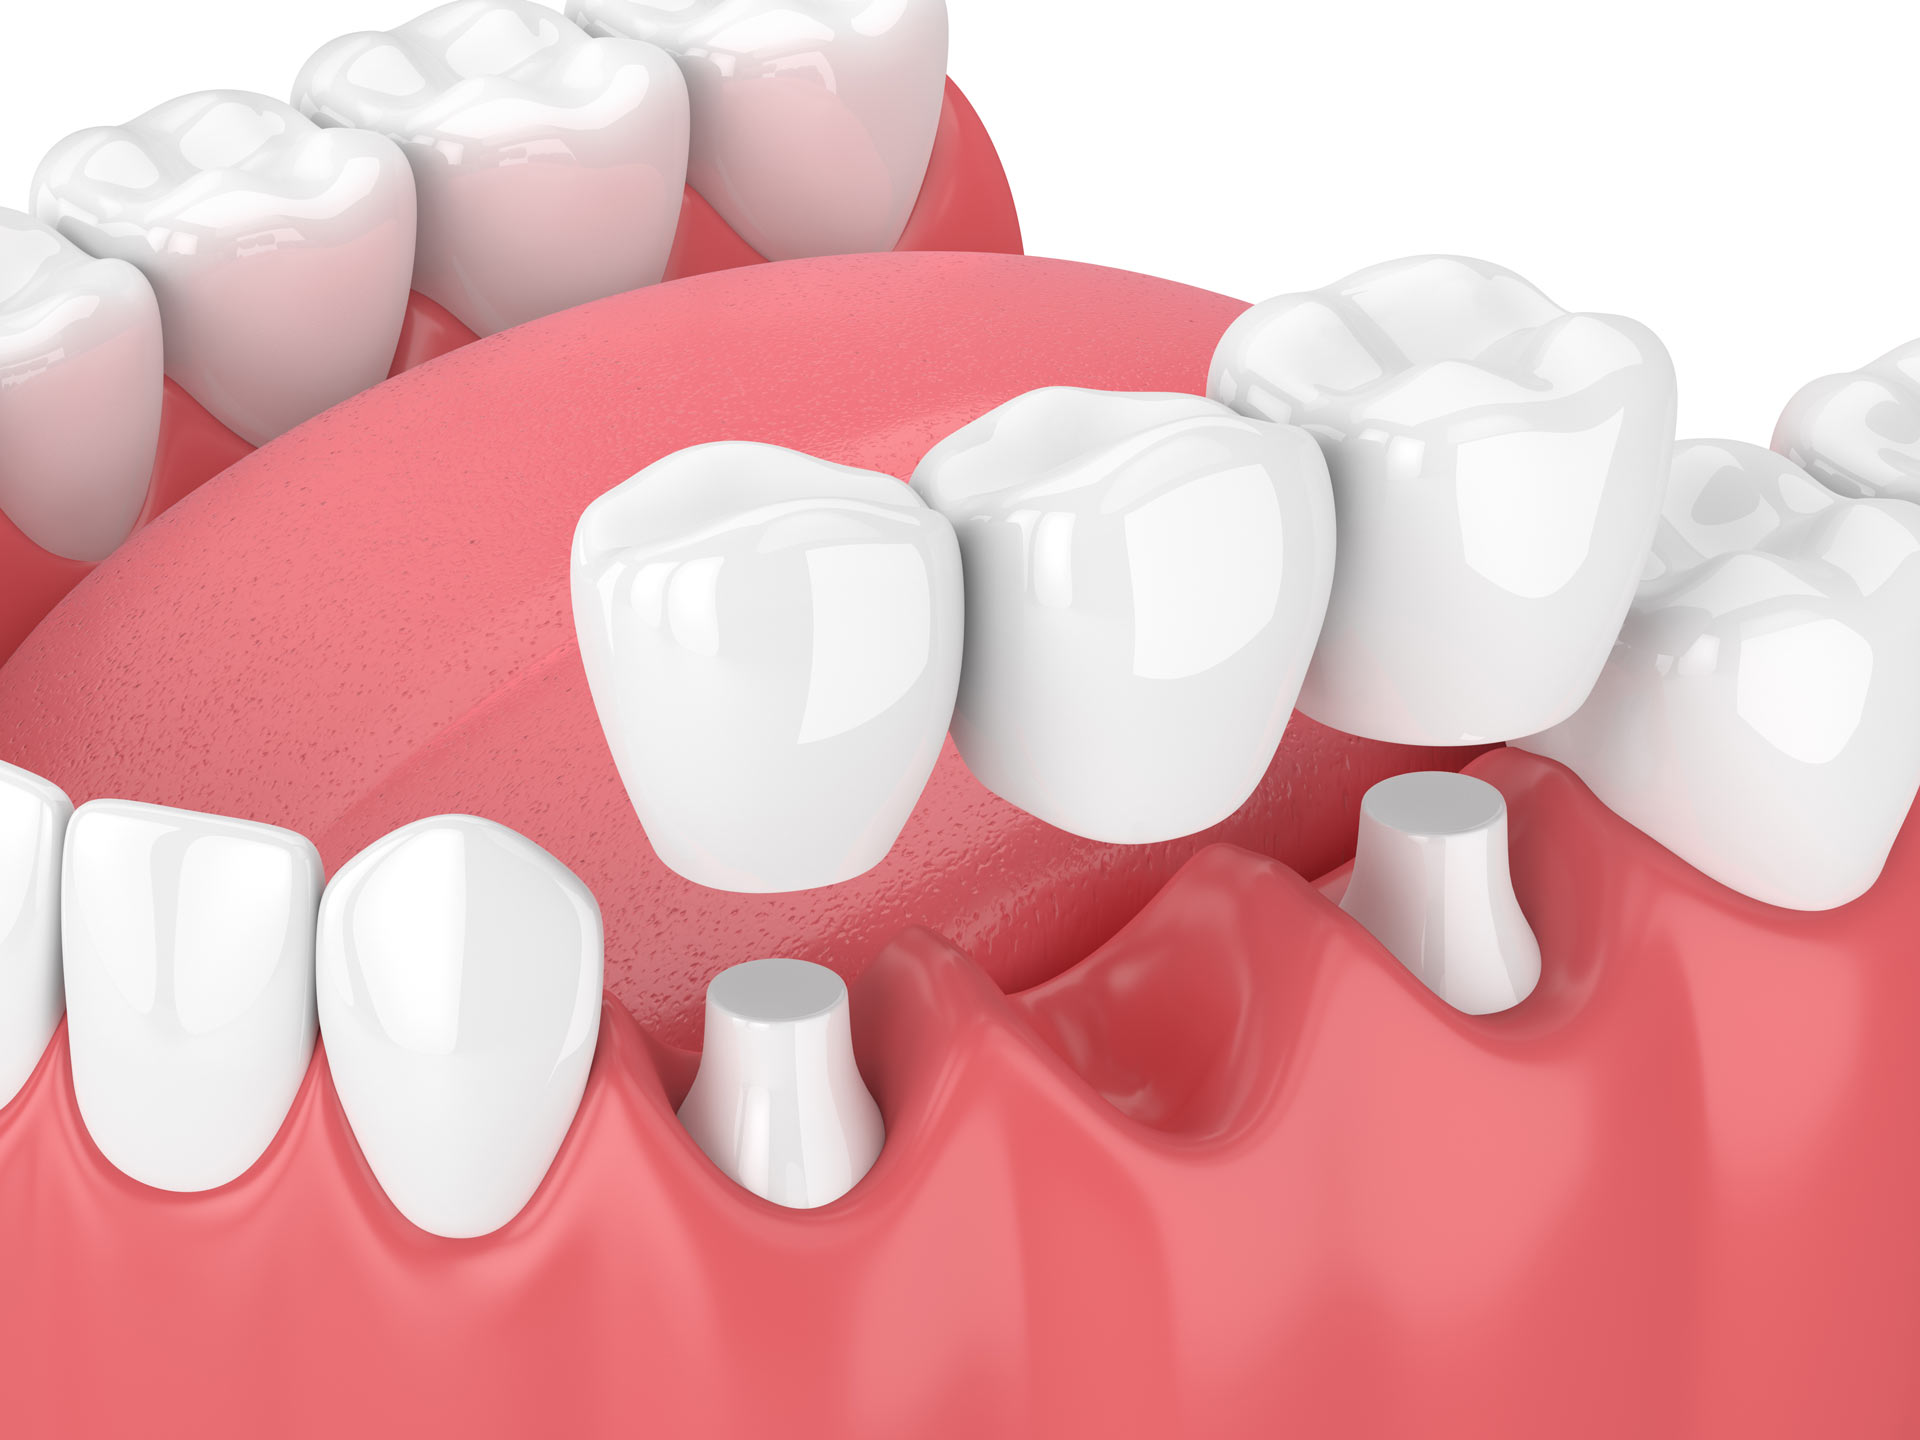 Fillings, Crowns, Bridges: What's the Difference?